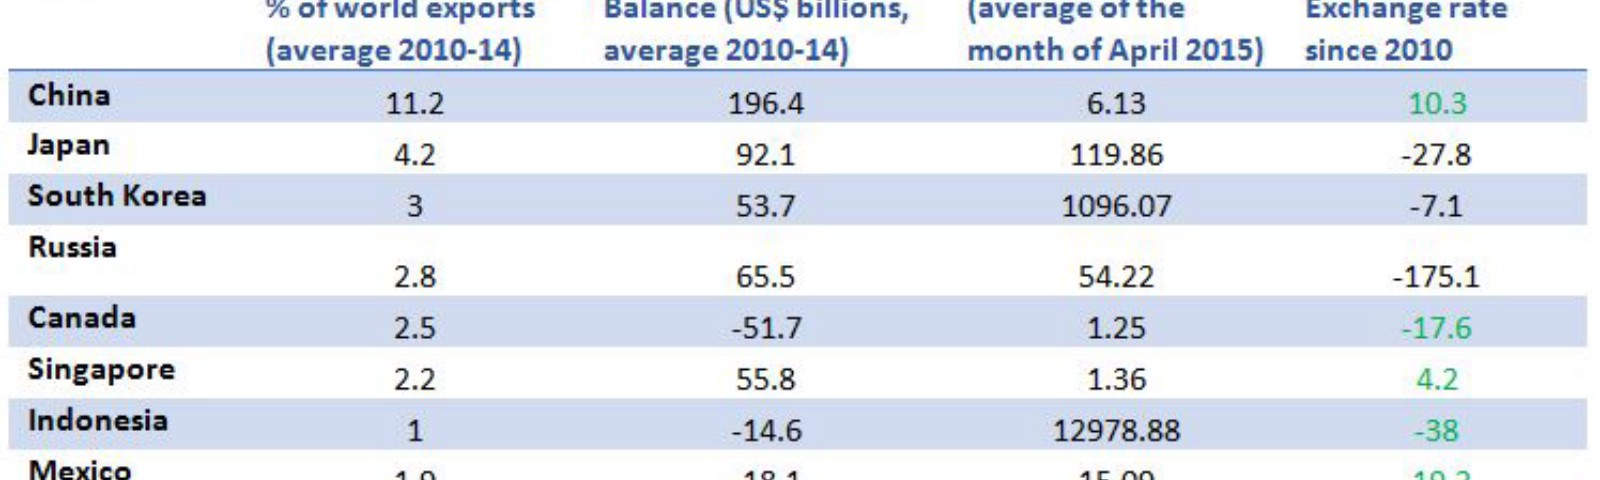 Table showing the relationship between trade balance and exchange rates